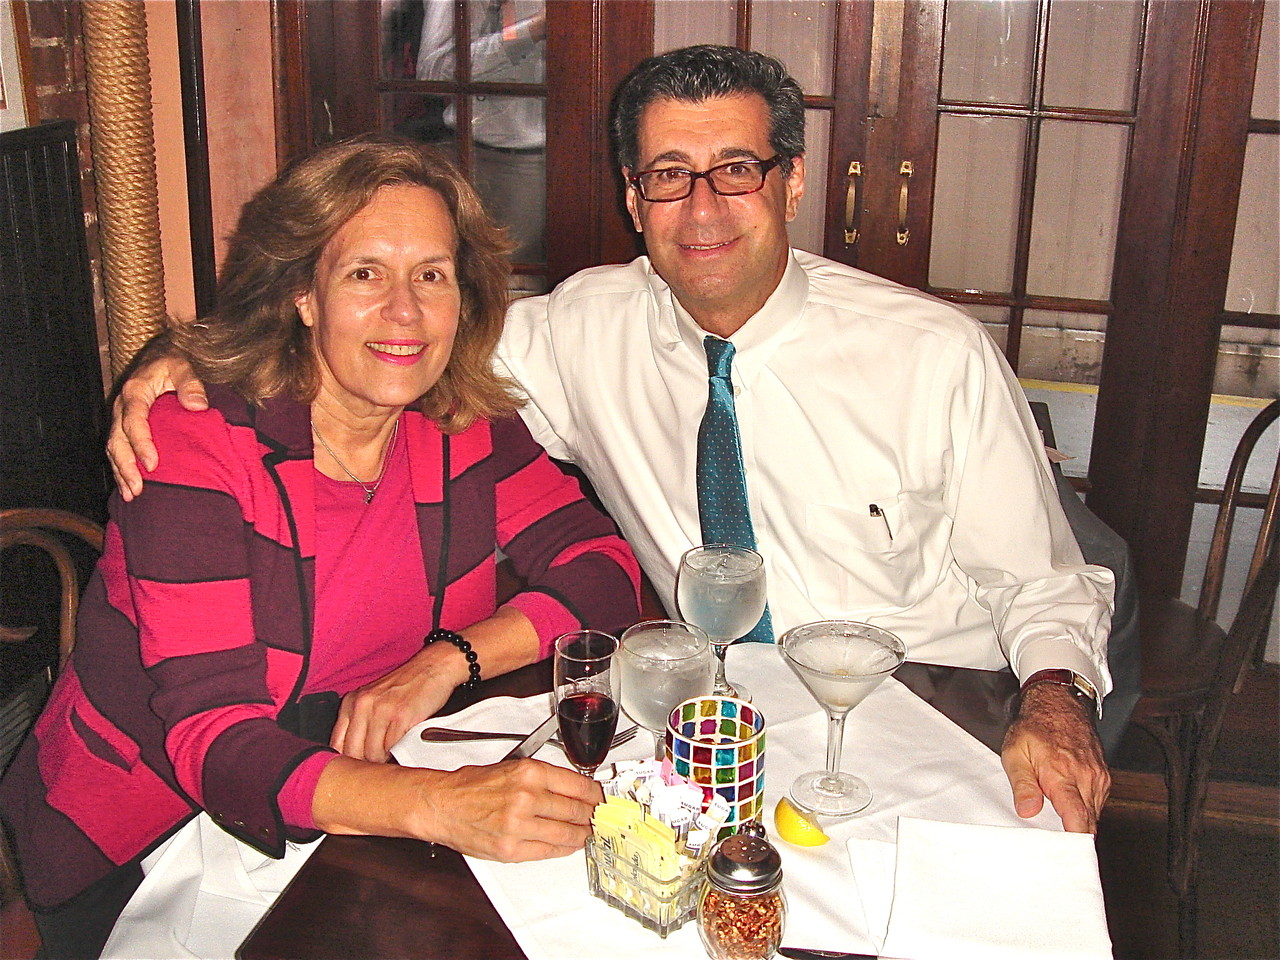 Lorraine Gudas celebrates David Hajjar's birthday with him  Sept 2012